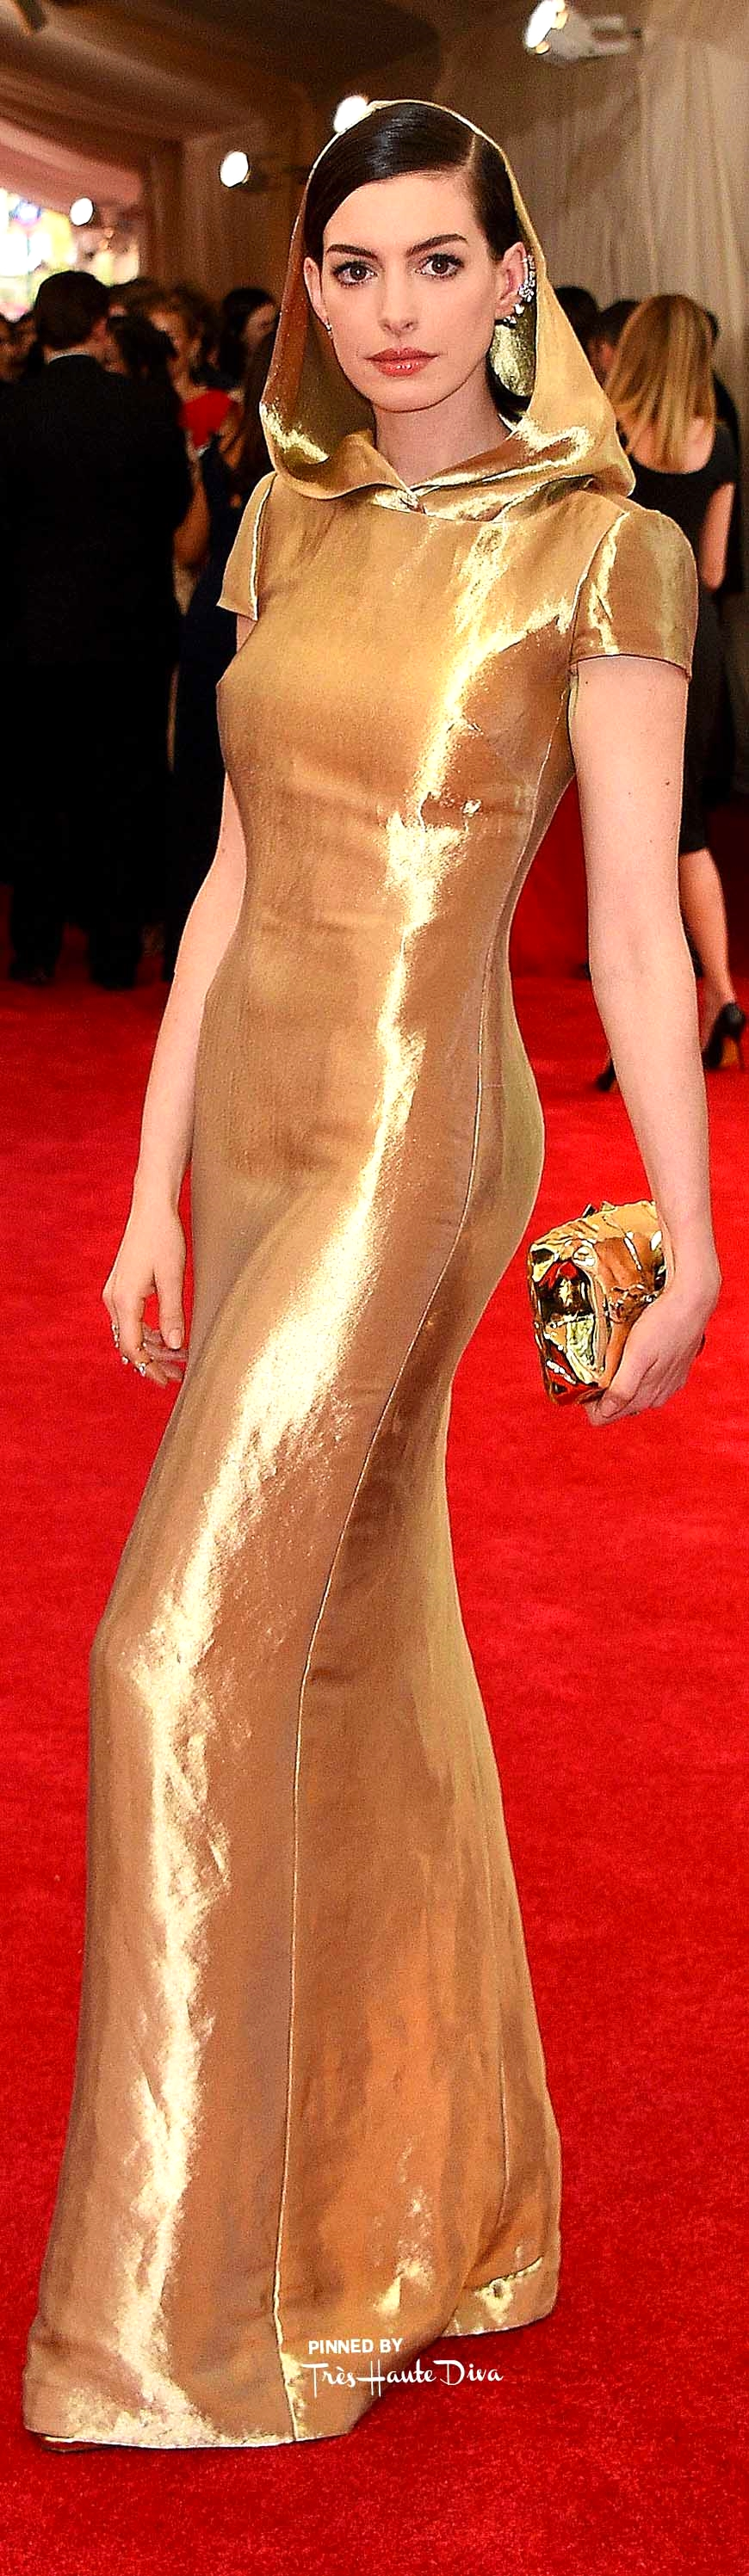 Anne Hathaway in Ralph Lauren Getty Images/ Larry Busacca